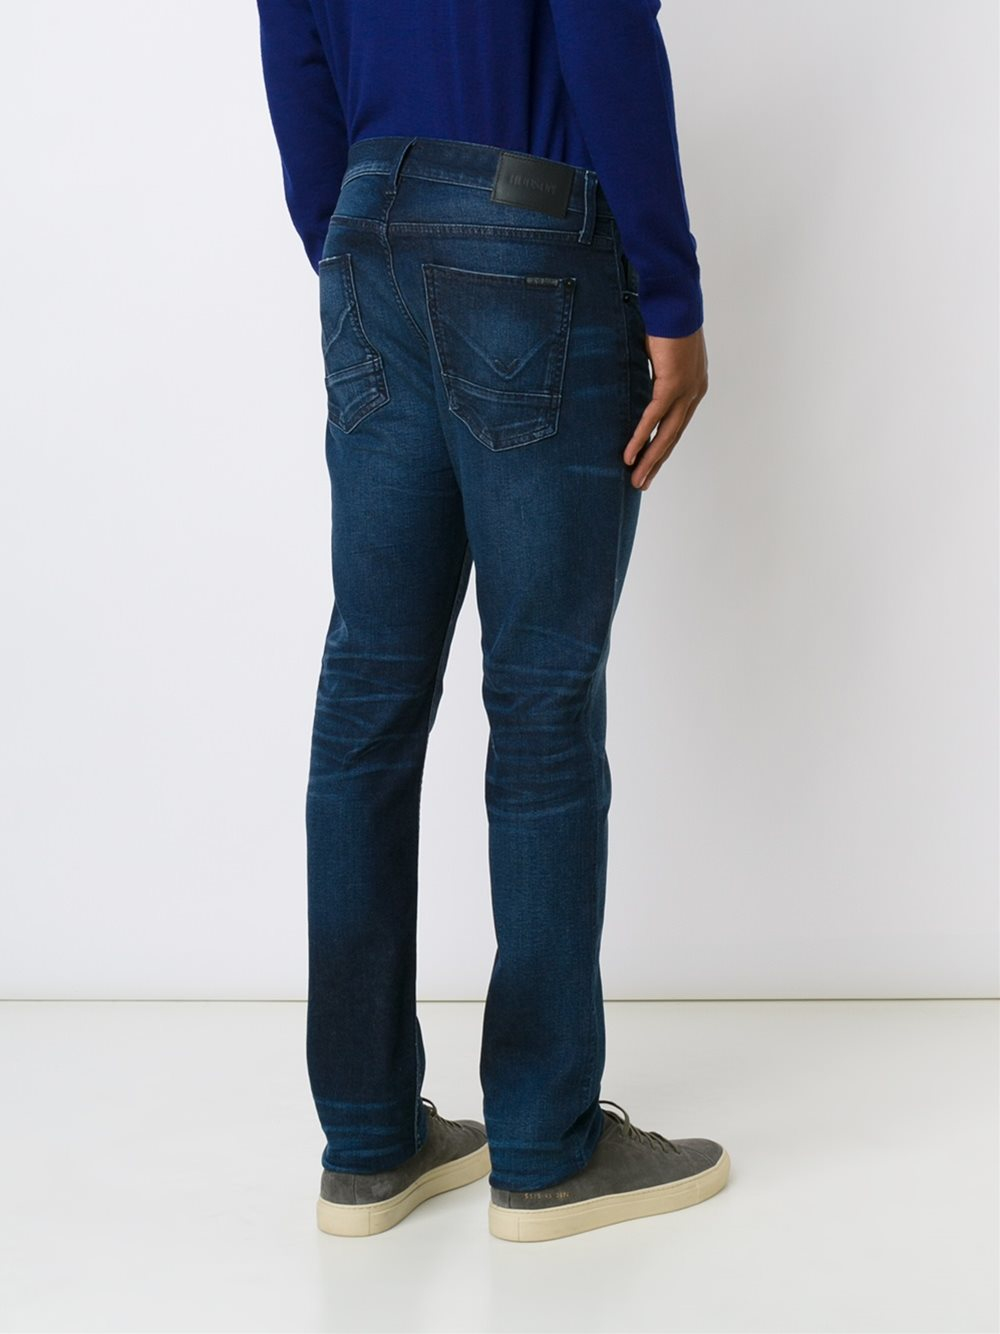 Citizens Of Humanity Men S Jeans